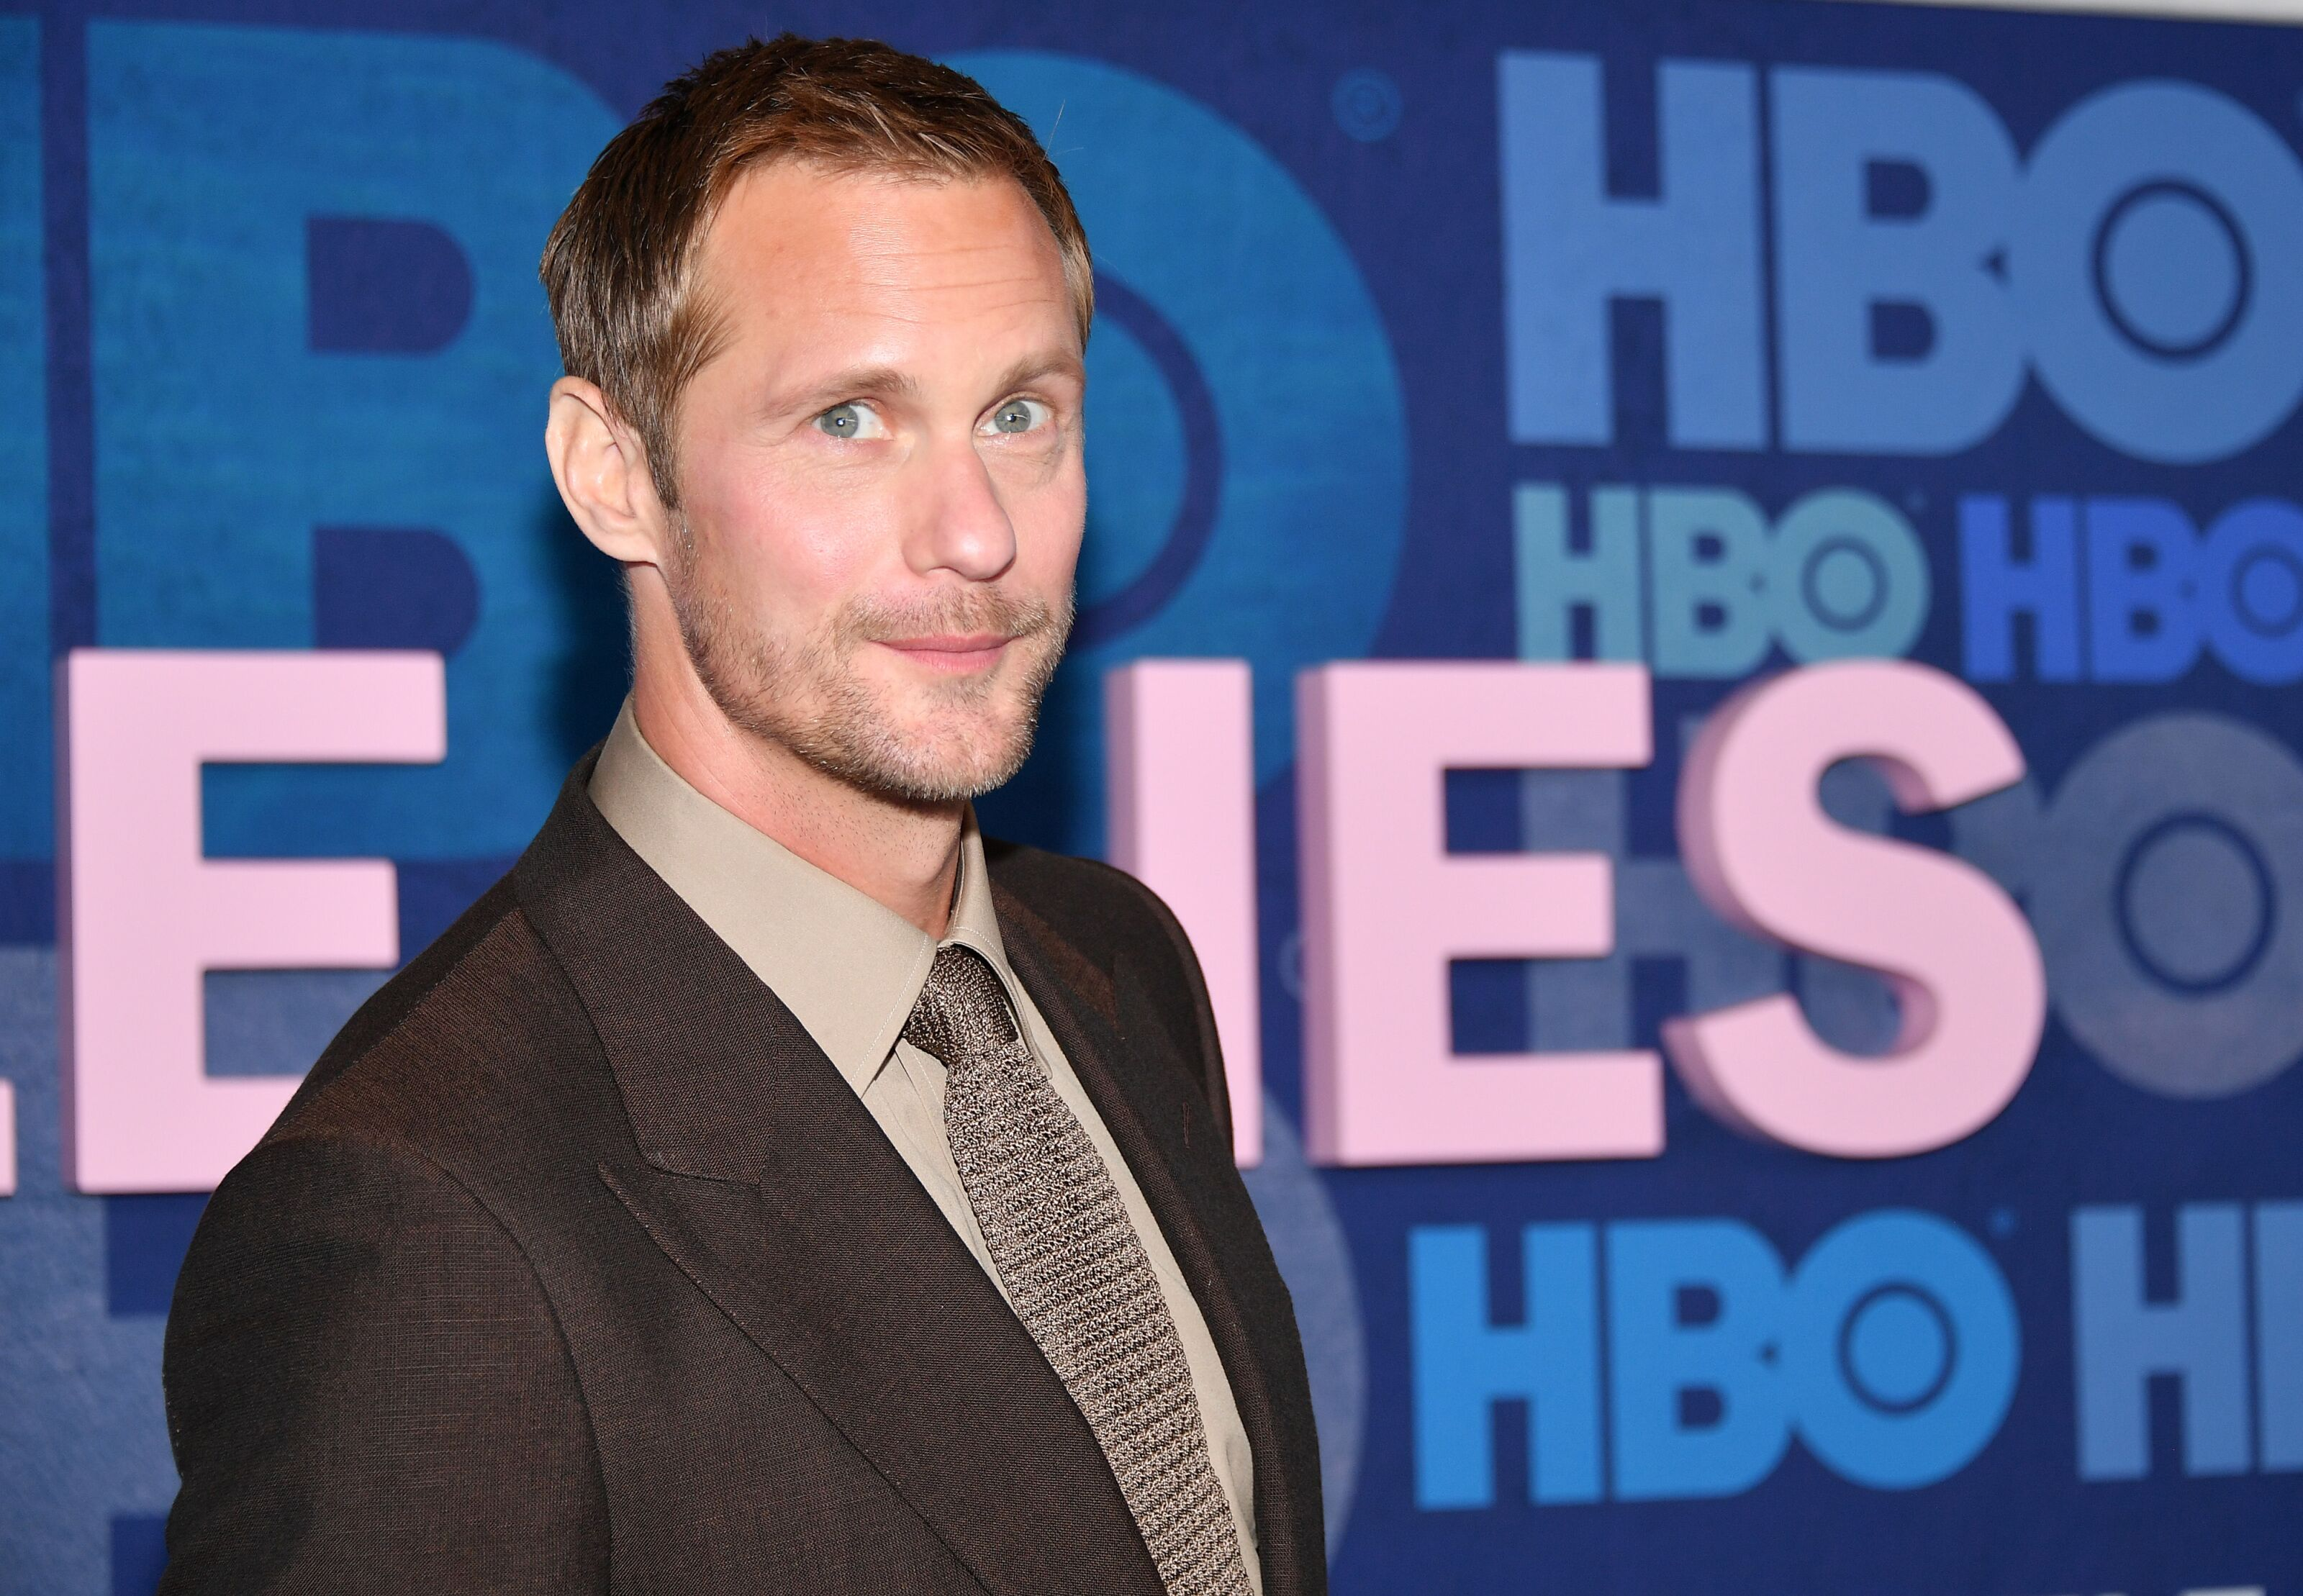 The Stand: Alexander Skarsgård to star in CBS All Access series